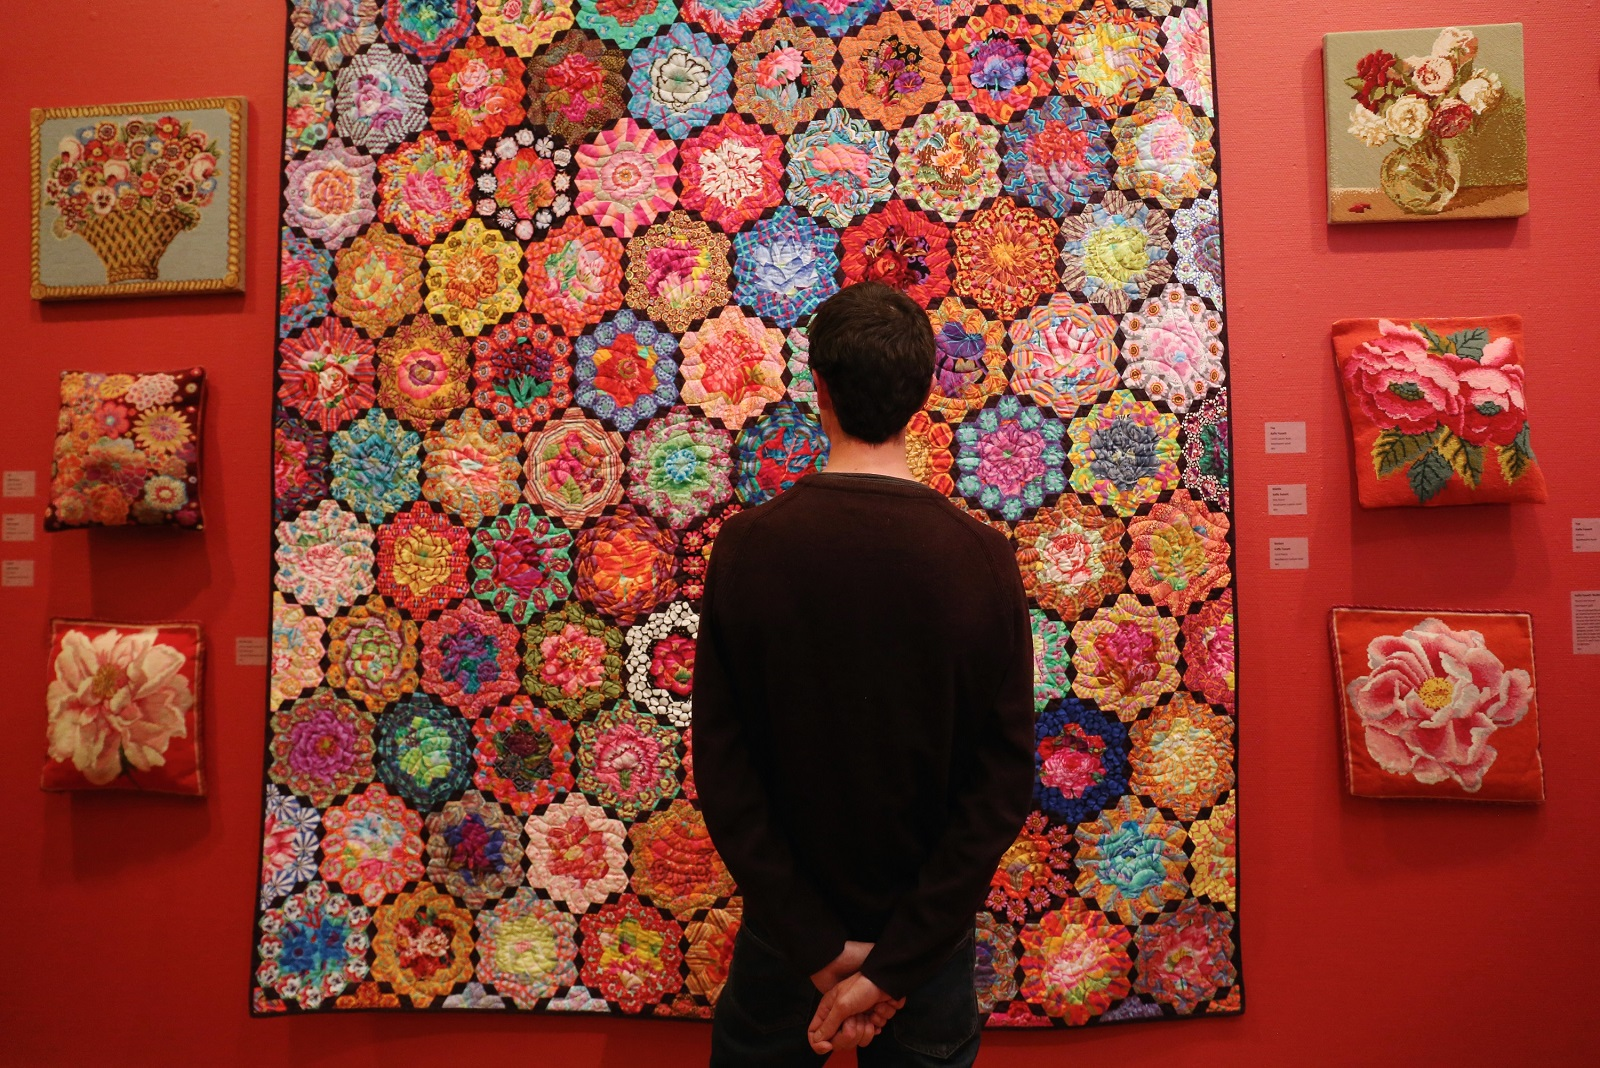 Image: A visitor viewing a quilt